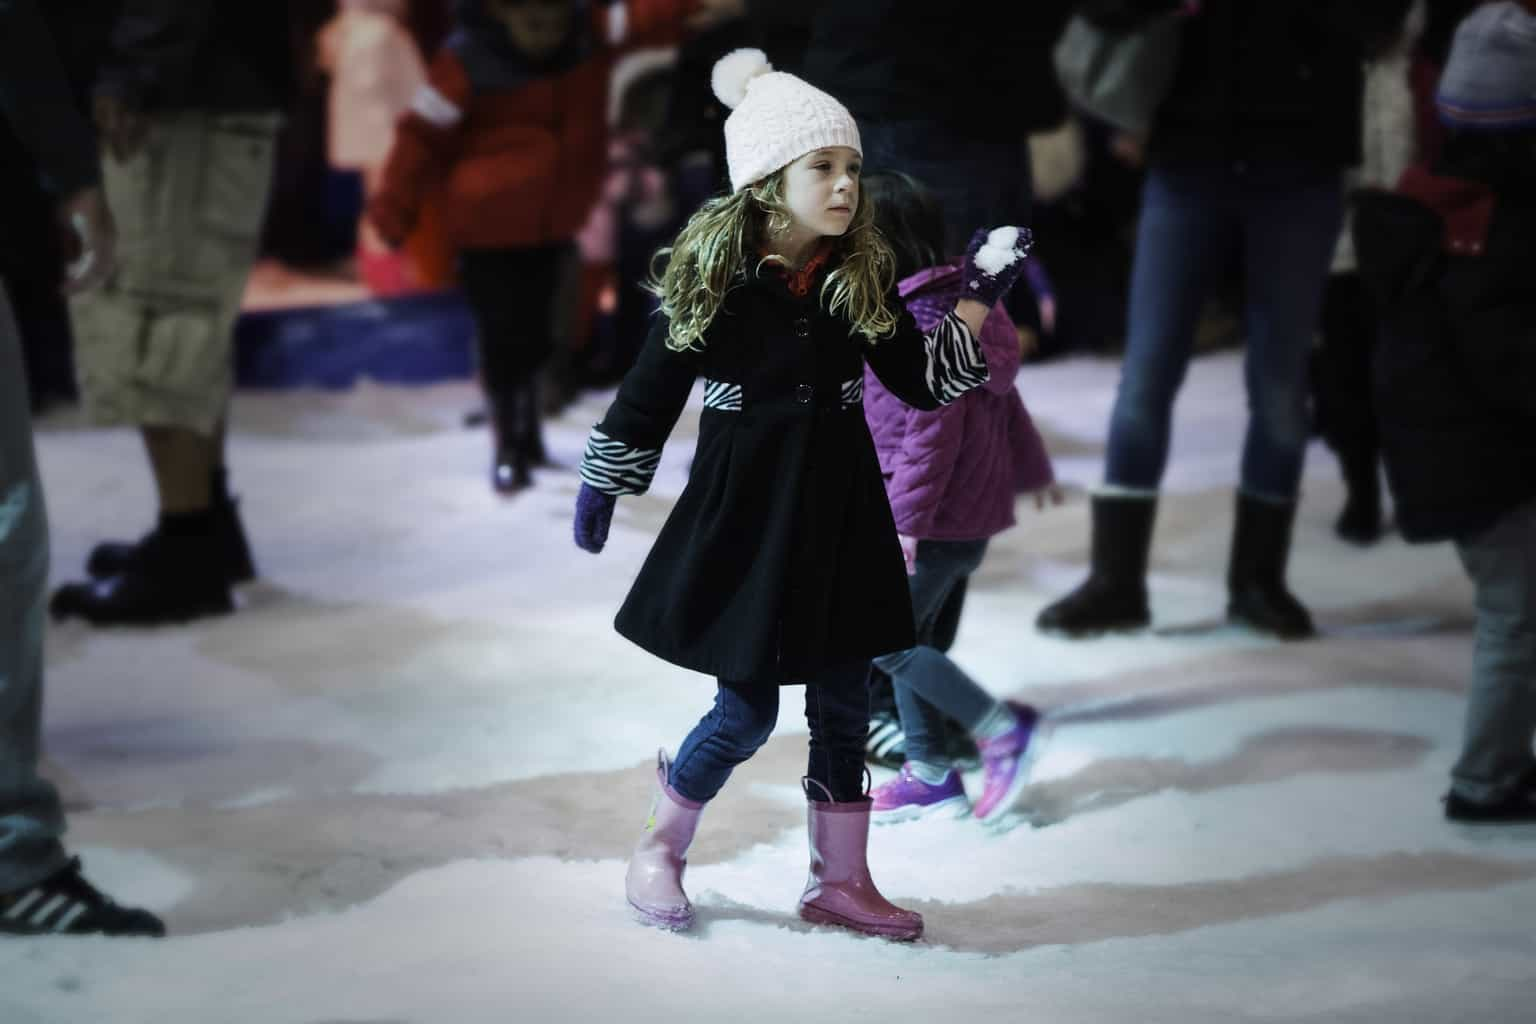 Where you can find snow in Southern California? Check out Winter Fest 2017 blowing into the OC Fair & Event Center in Costa Mesa on December 21 through January 7! Winter Fest embodies the spirit of the winter season, bringing fun and merriment to sunny Southern California.